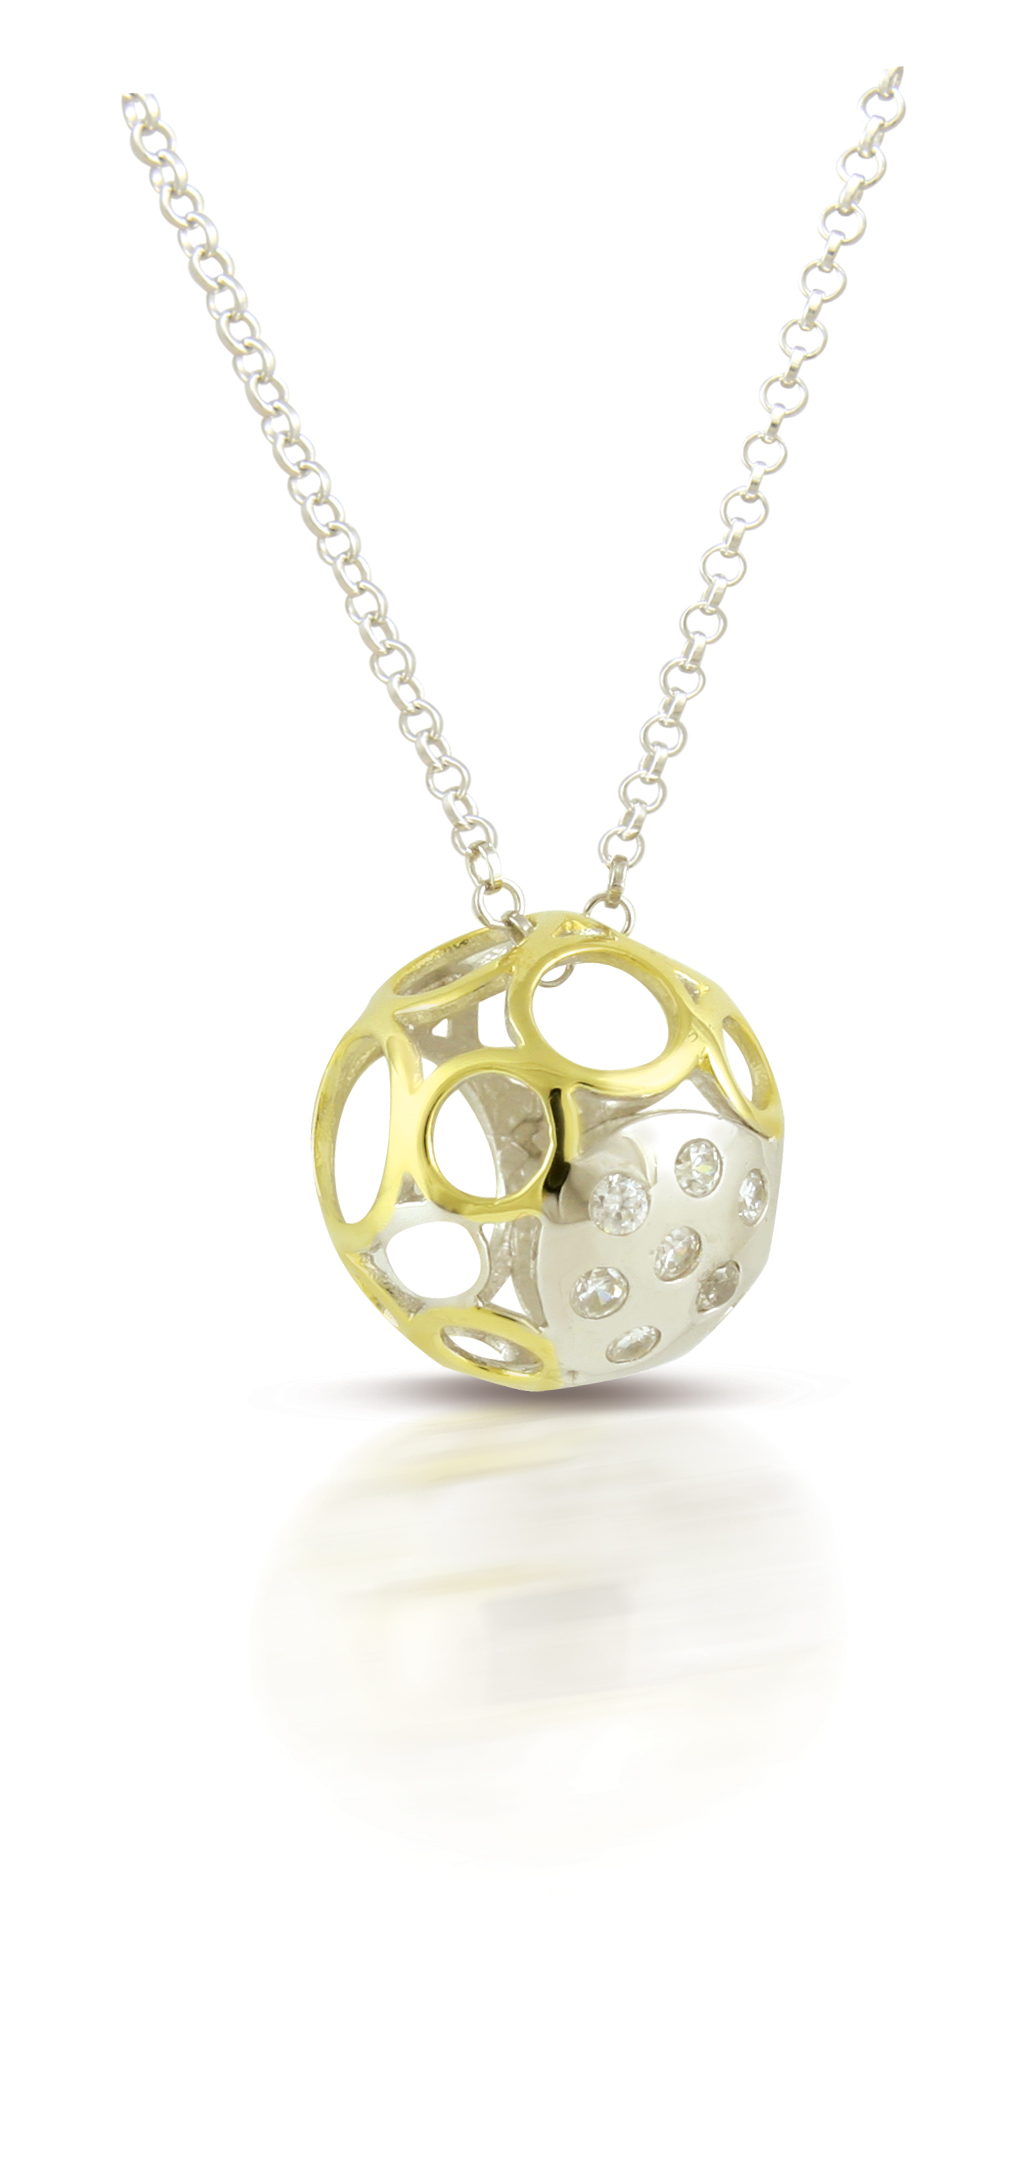 65693 - Sphere of Life 'Bubbly' Pendant in Sterling Silver